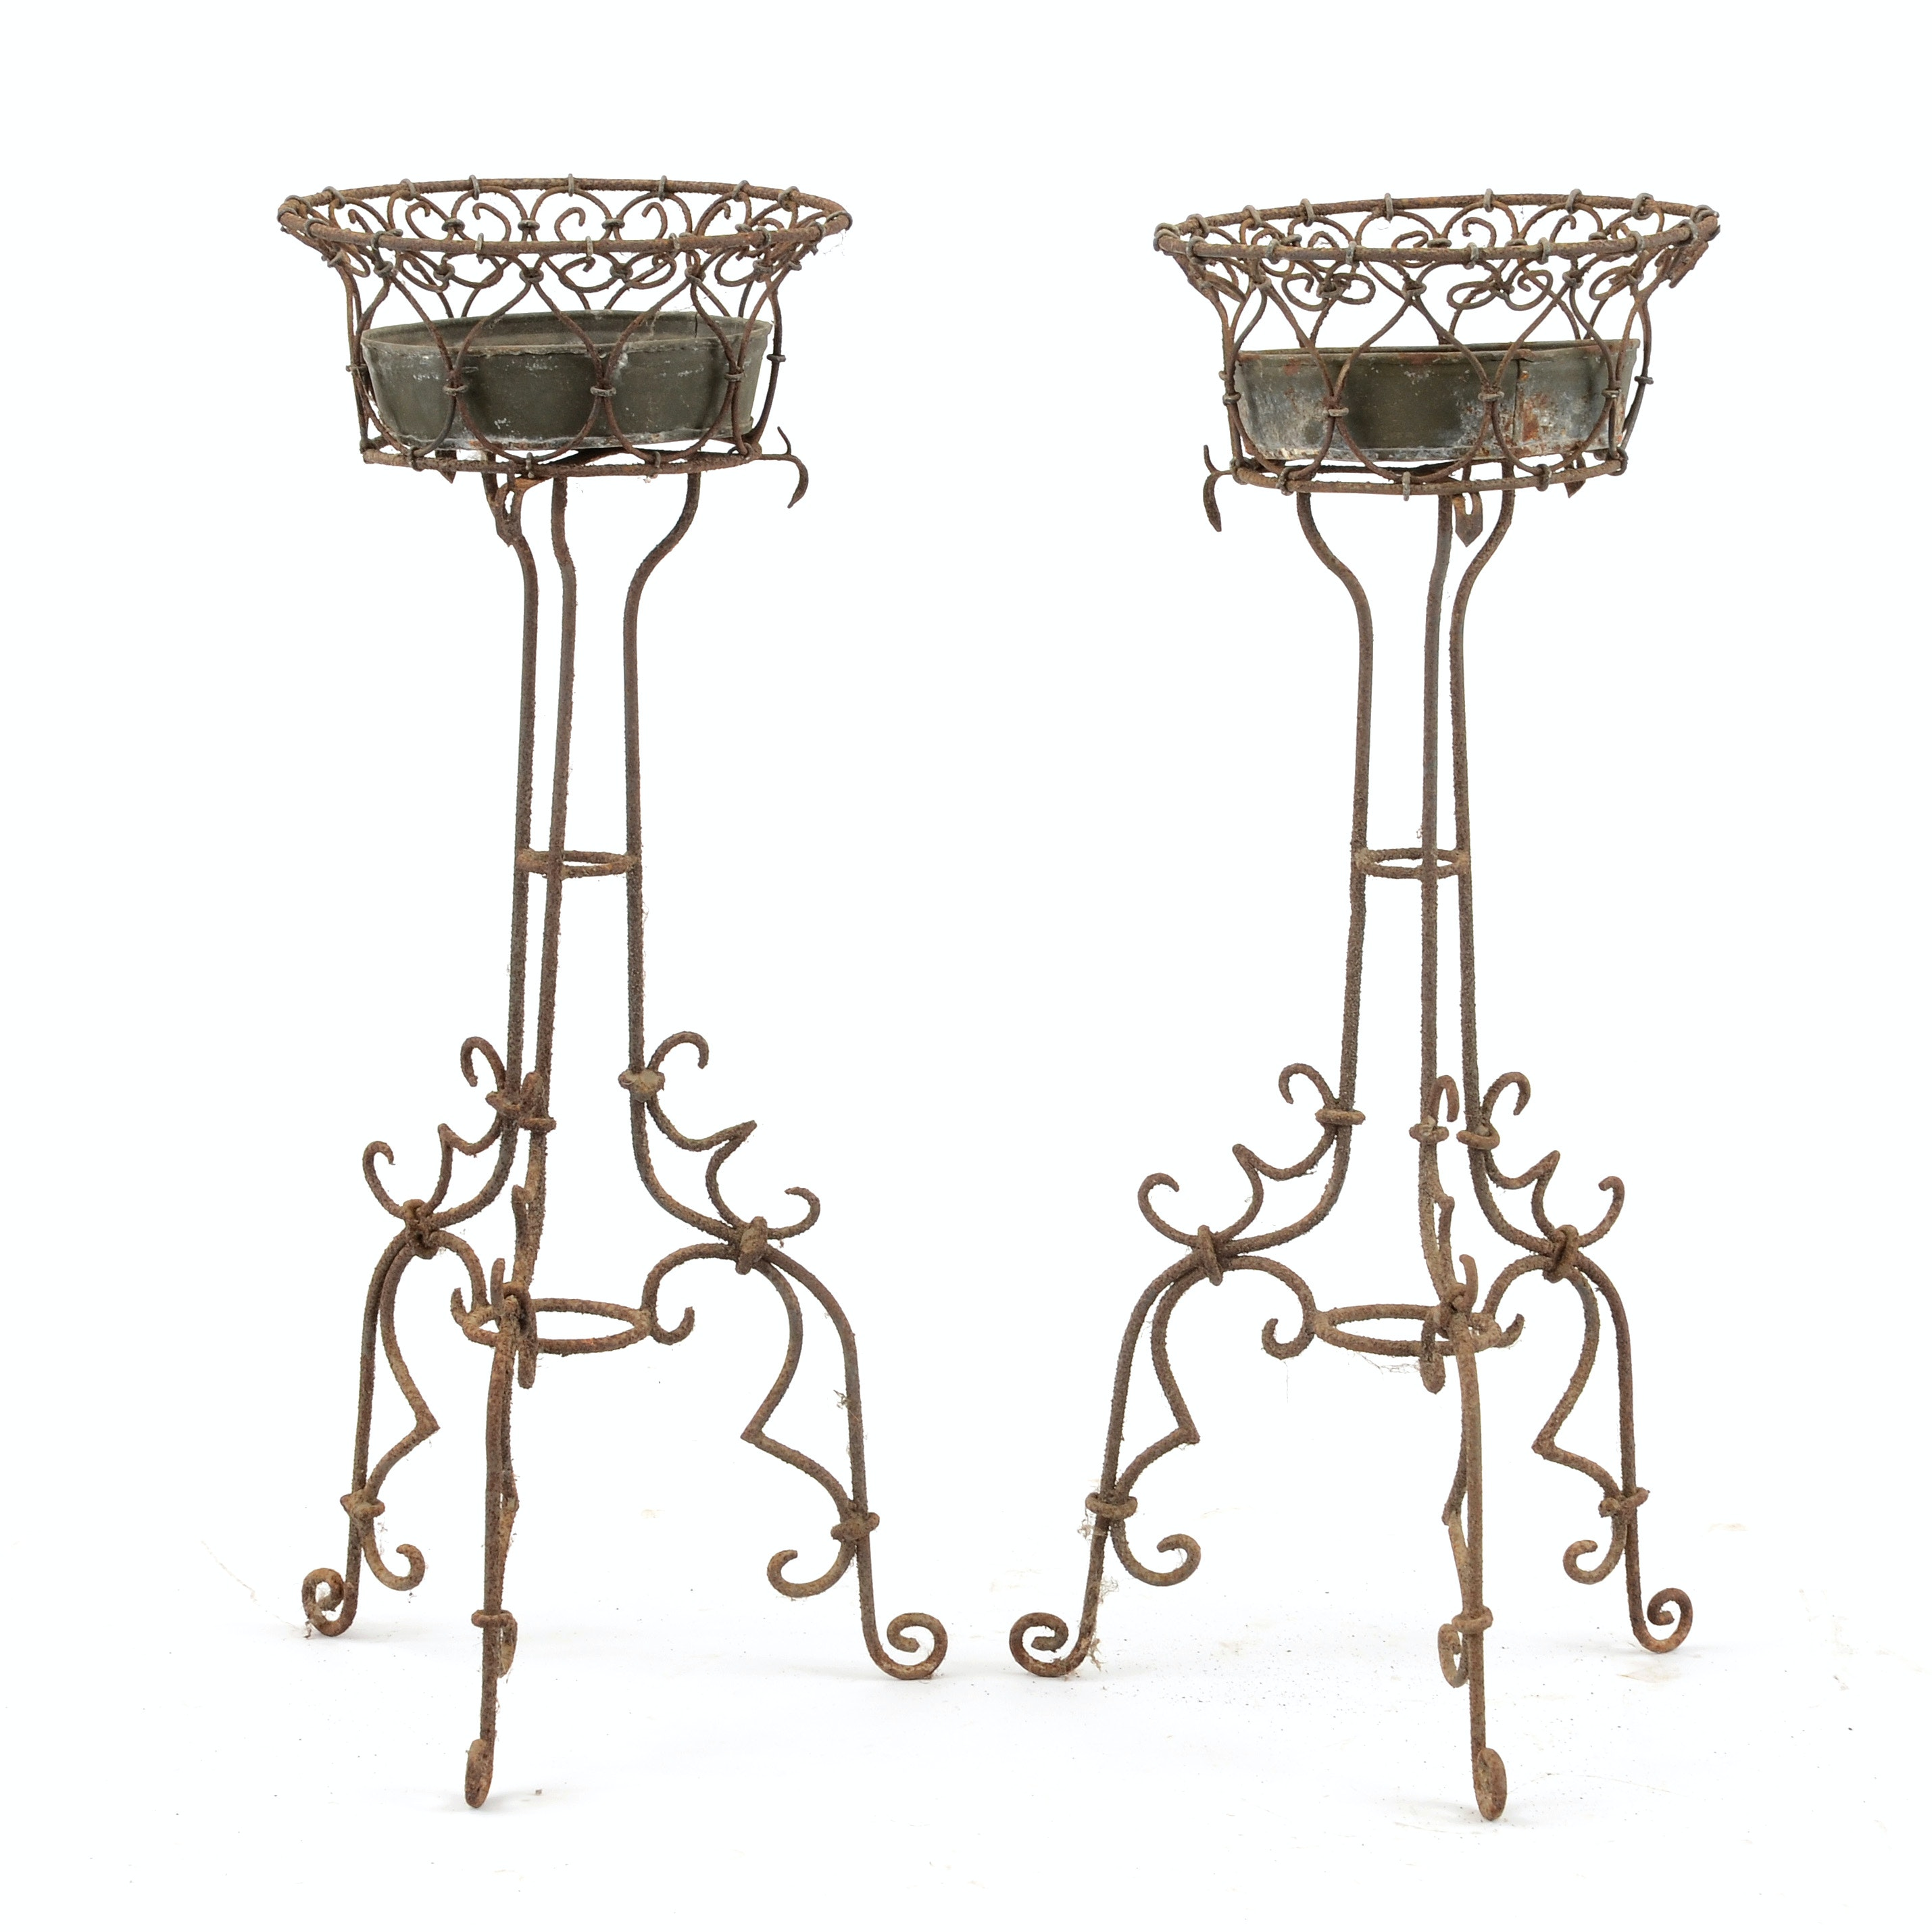 Pair of Wrought Iron Wire Planters